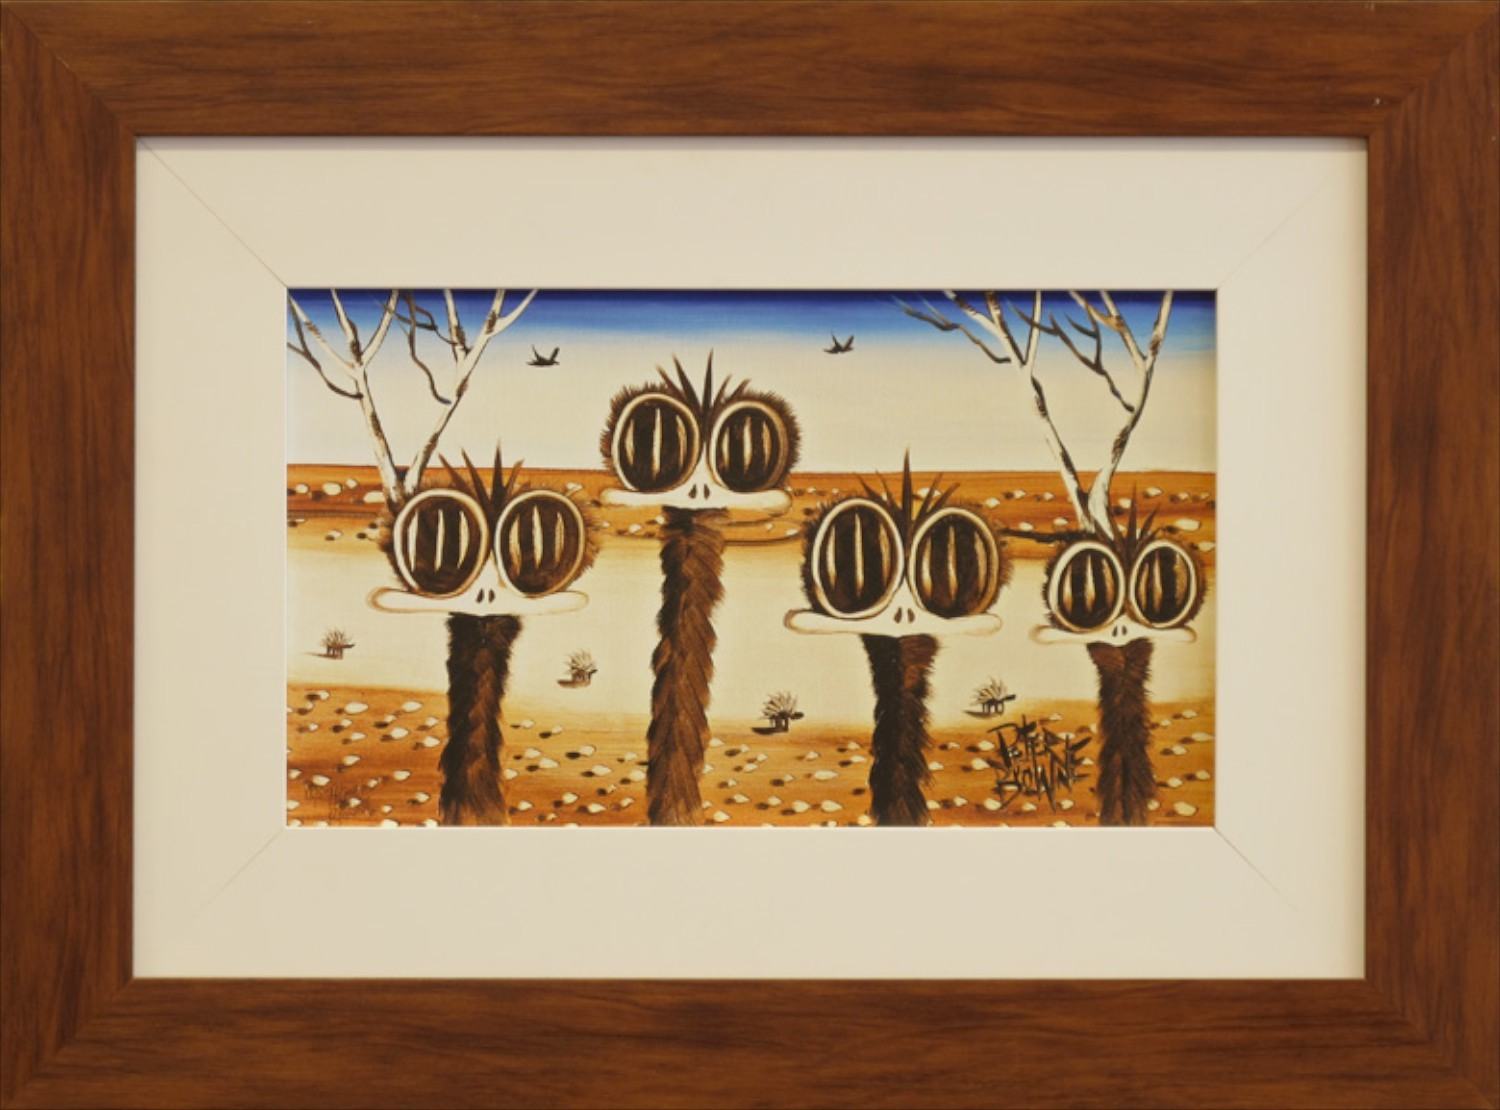 Peter Browne 'The Family' 40cm x 55cm (framed) Was $2800 Now $1400